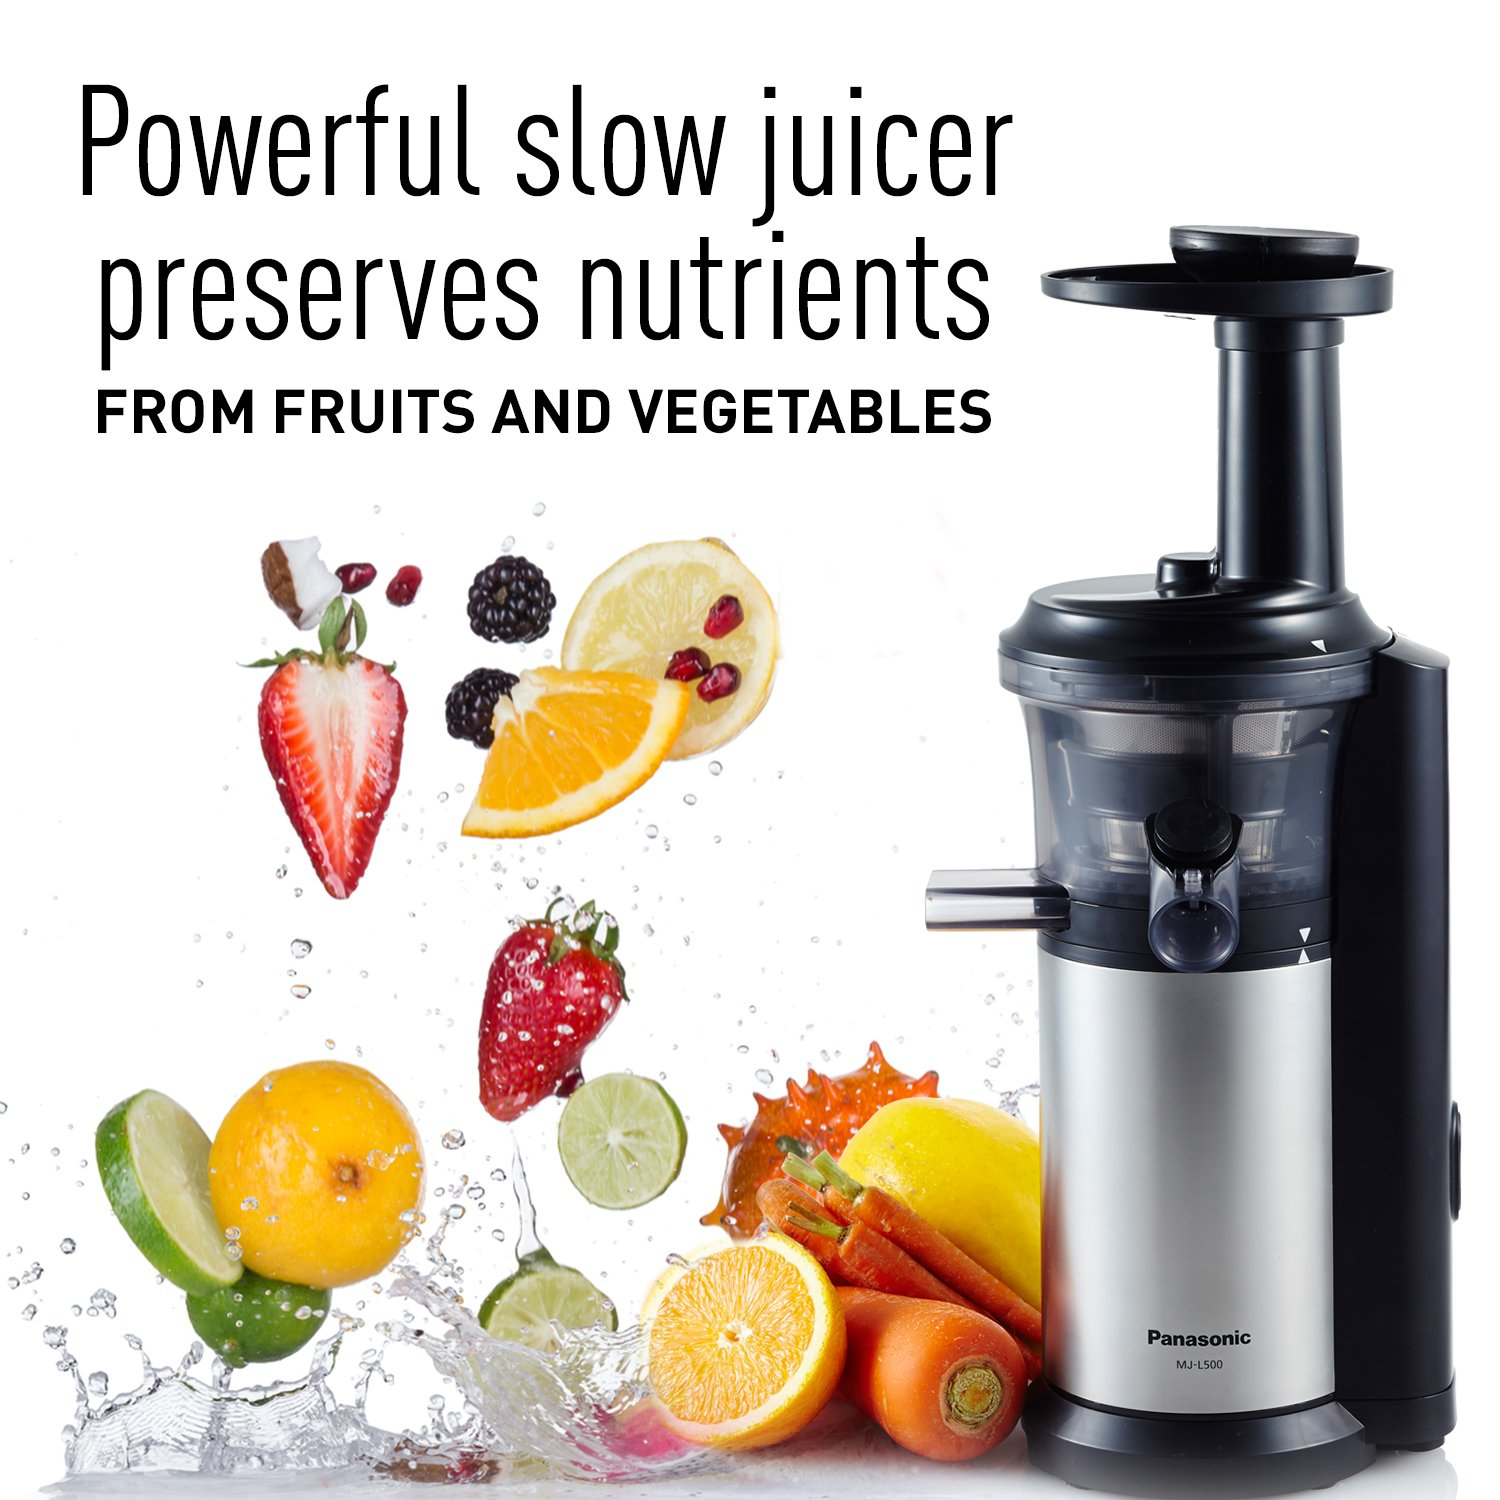 Healthy Living Slow Juicer Review : Slow Juicer Reviews. Hurom Slow Juicer. Juices. . Kuvings Nje3580u Masticating Slow Juicer ...